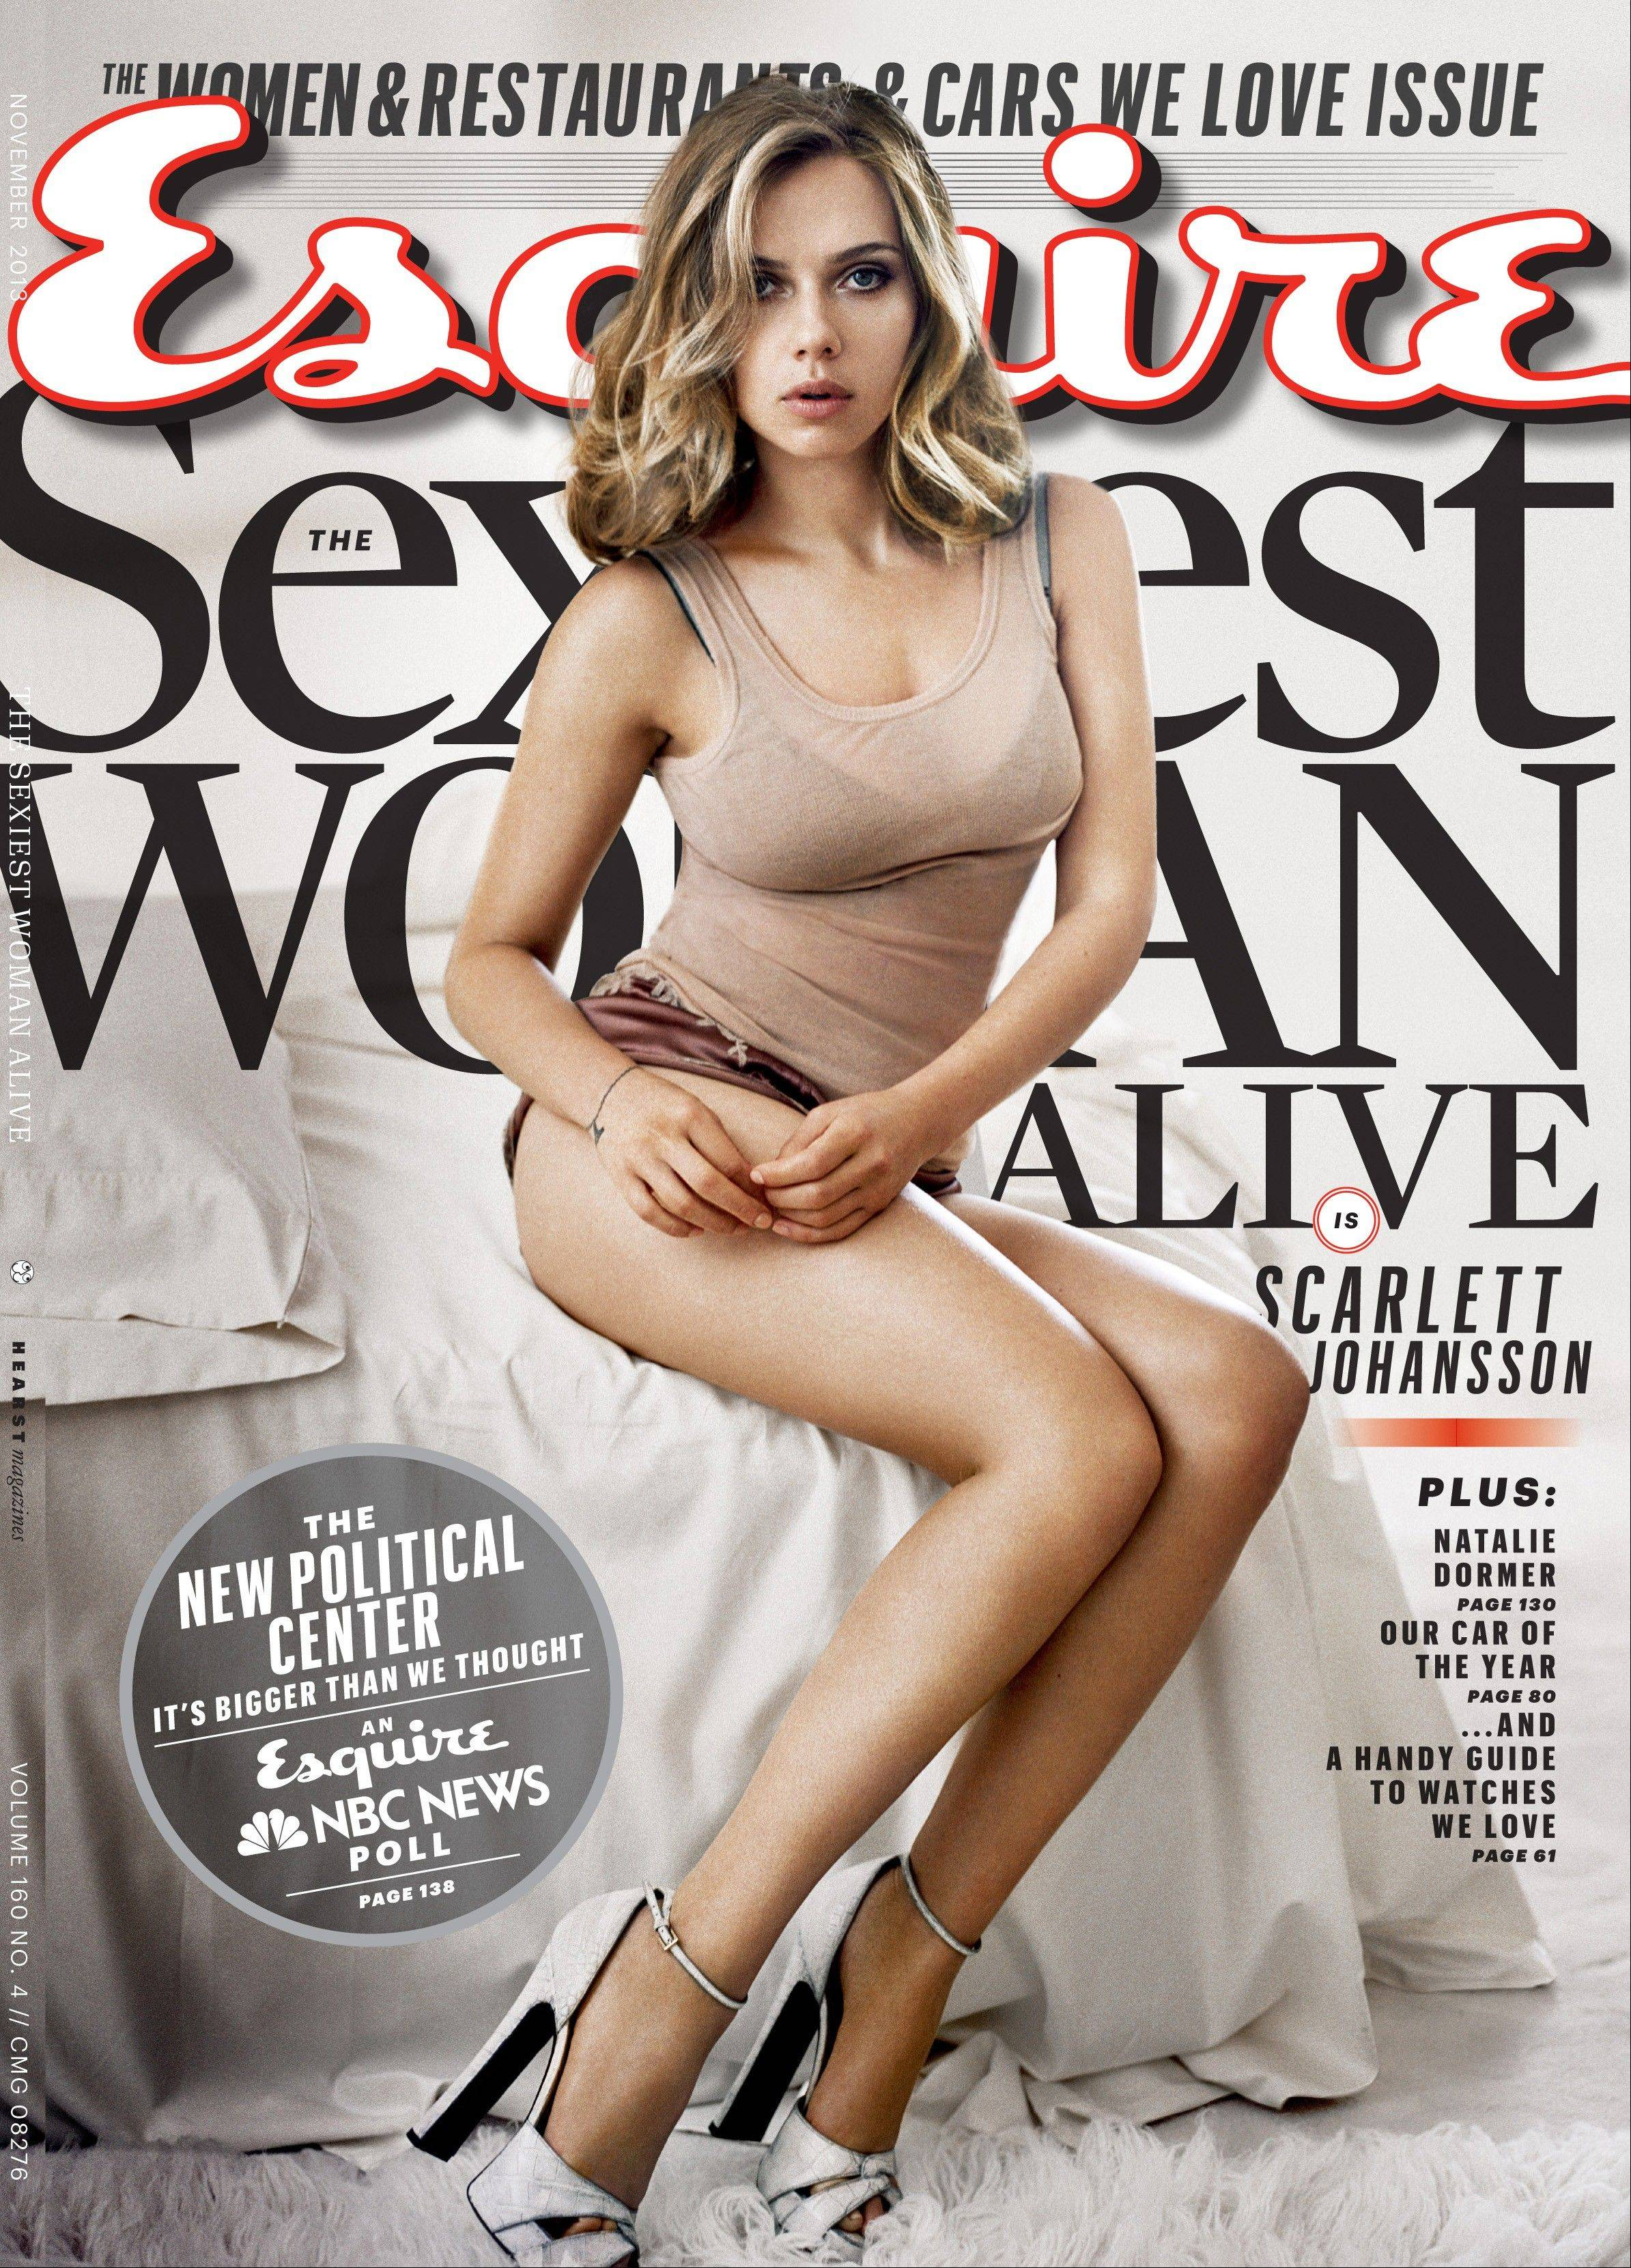 Scarlett Johansson has earned the title of Esquire magazine�s sexiest woman alive, for a second time. She also won in 2006.